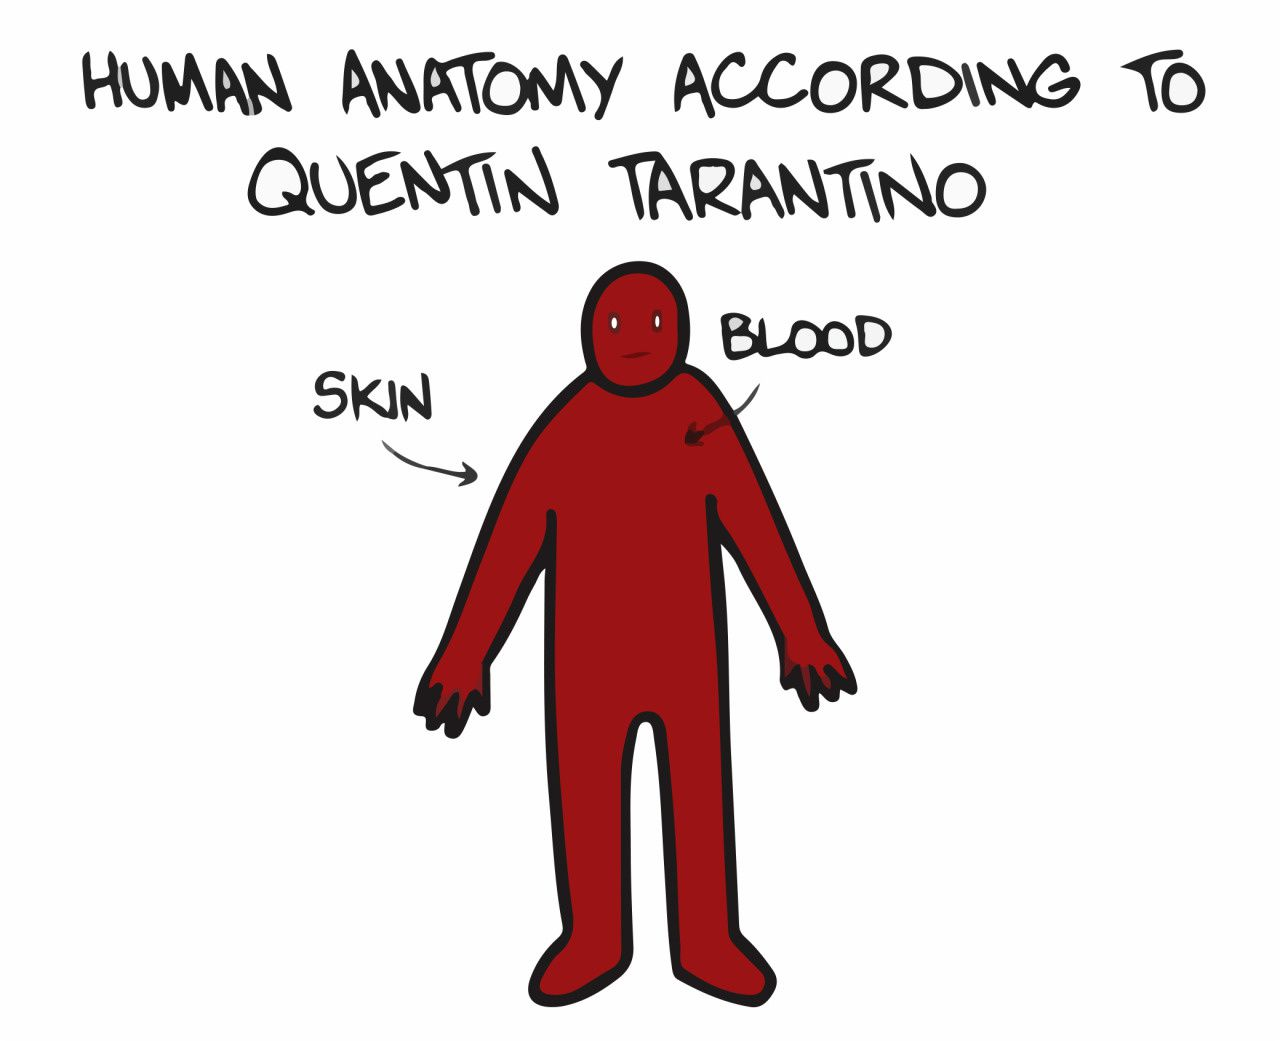 Human anatomy according to Quentin Tarantino